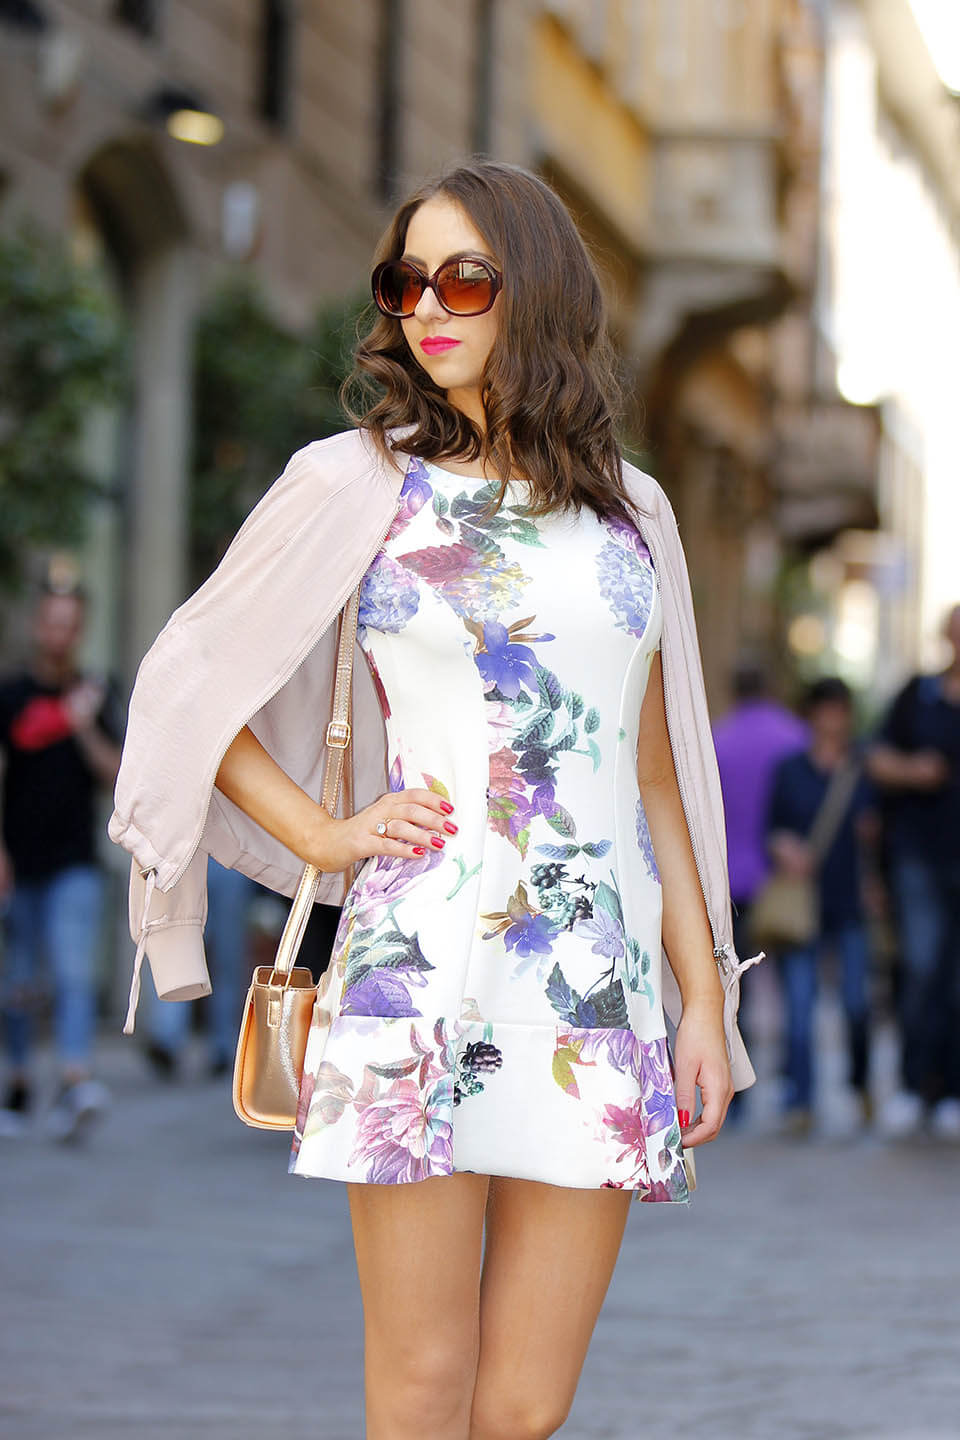 Summer Dress in Floral Print